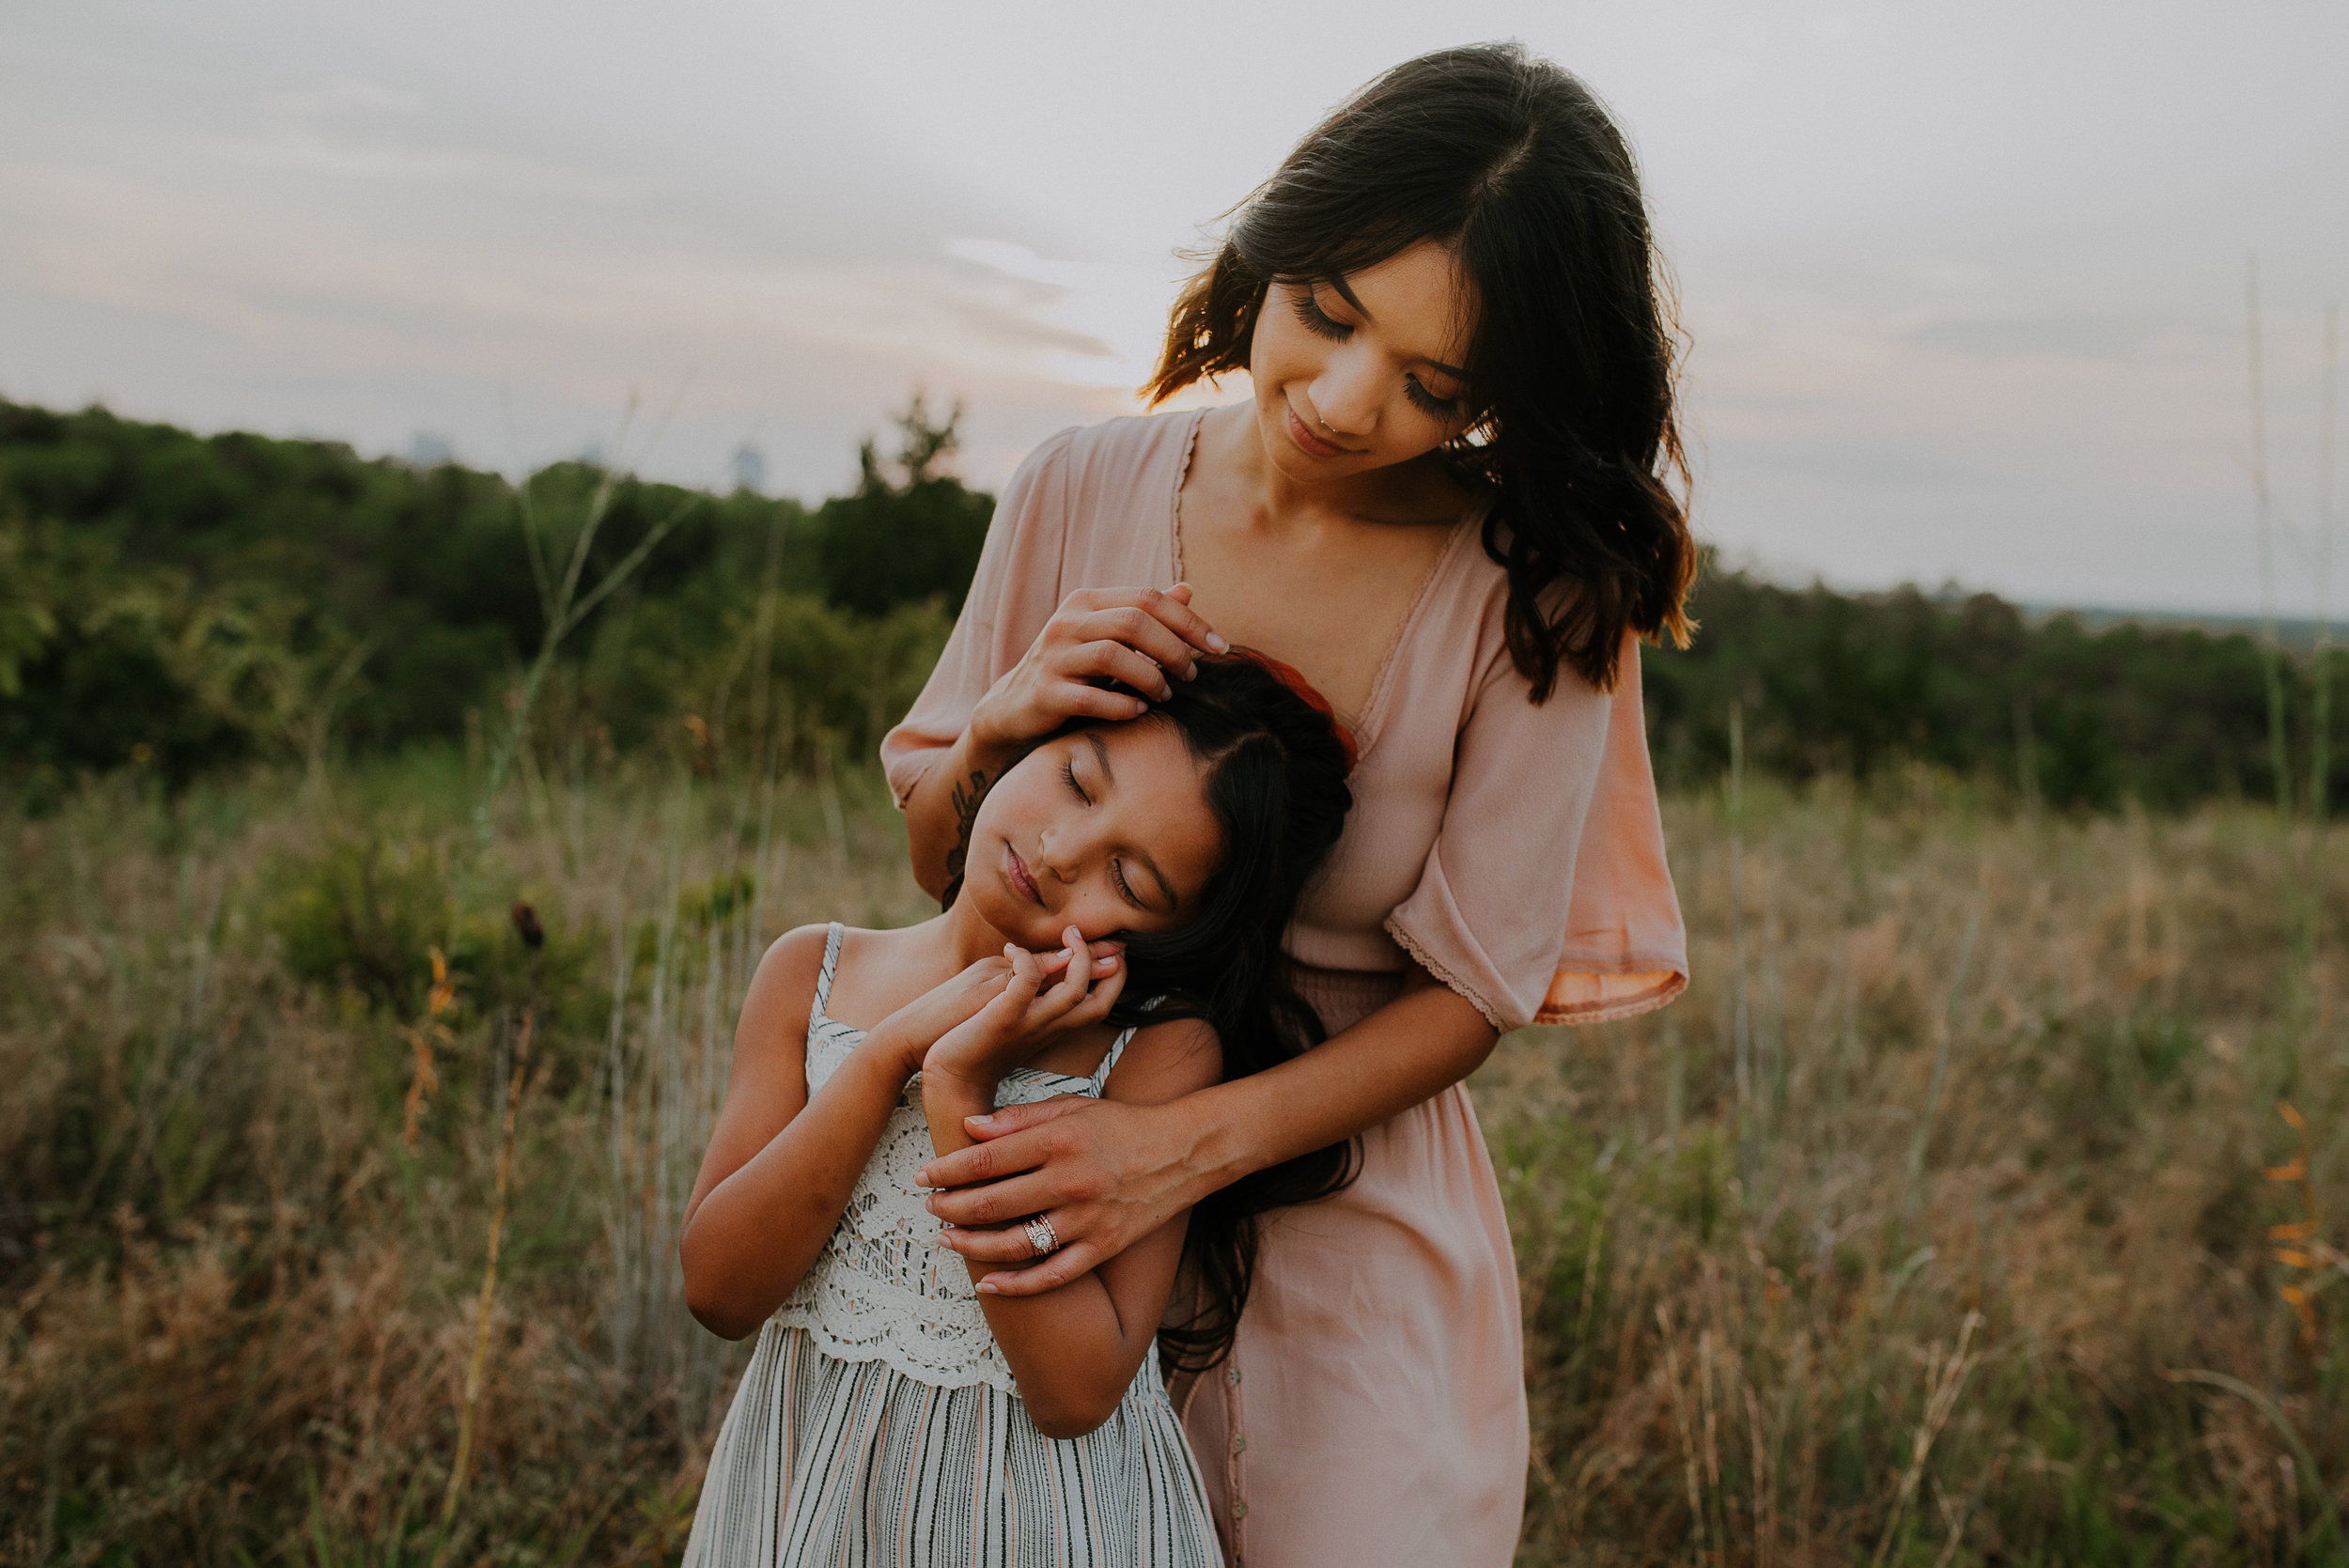 Jessi-marie-photography-dallas-fort-worth-texas-family-photographer-tandy-hills-natural-area-38